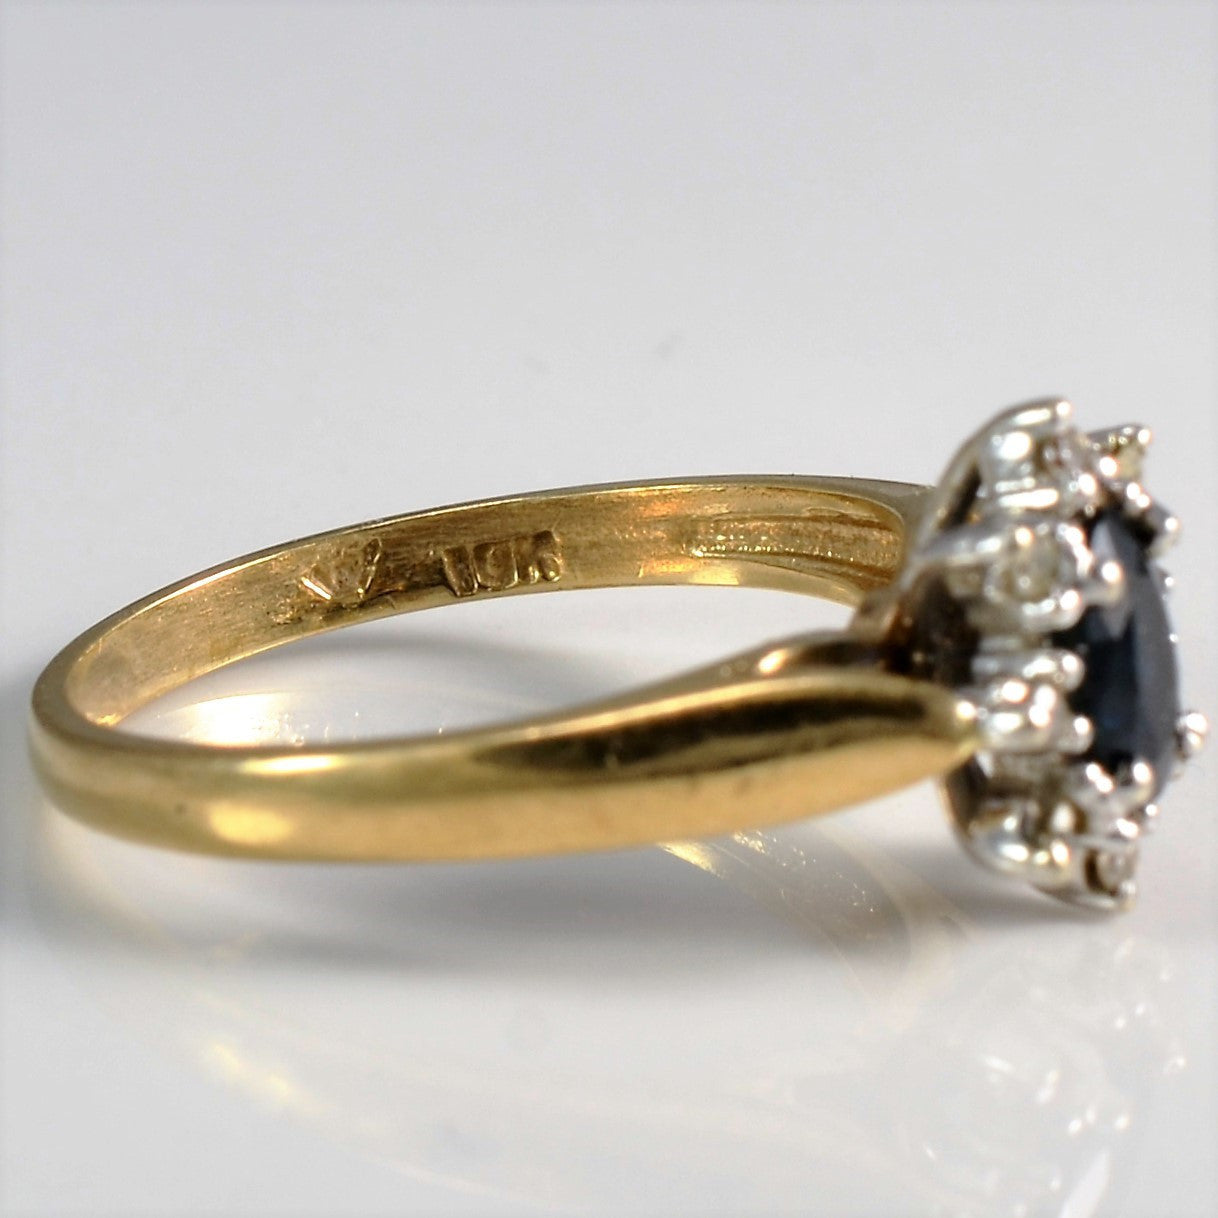 Oval Sapphire With Diamond Halo Ring | 0.04 ctw, SZ 6.5 |